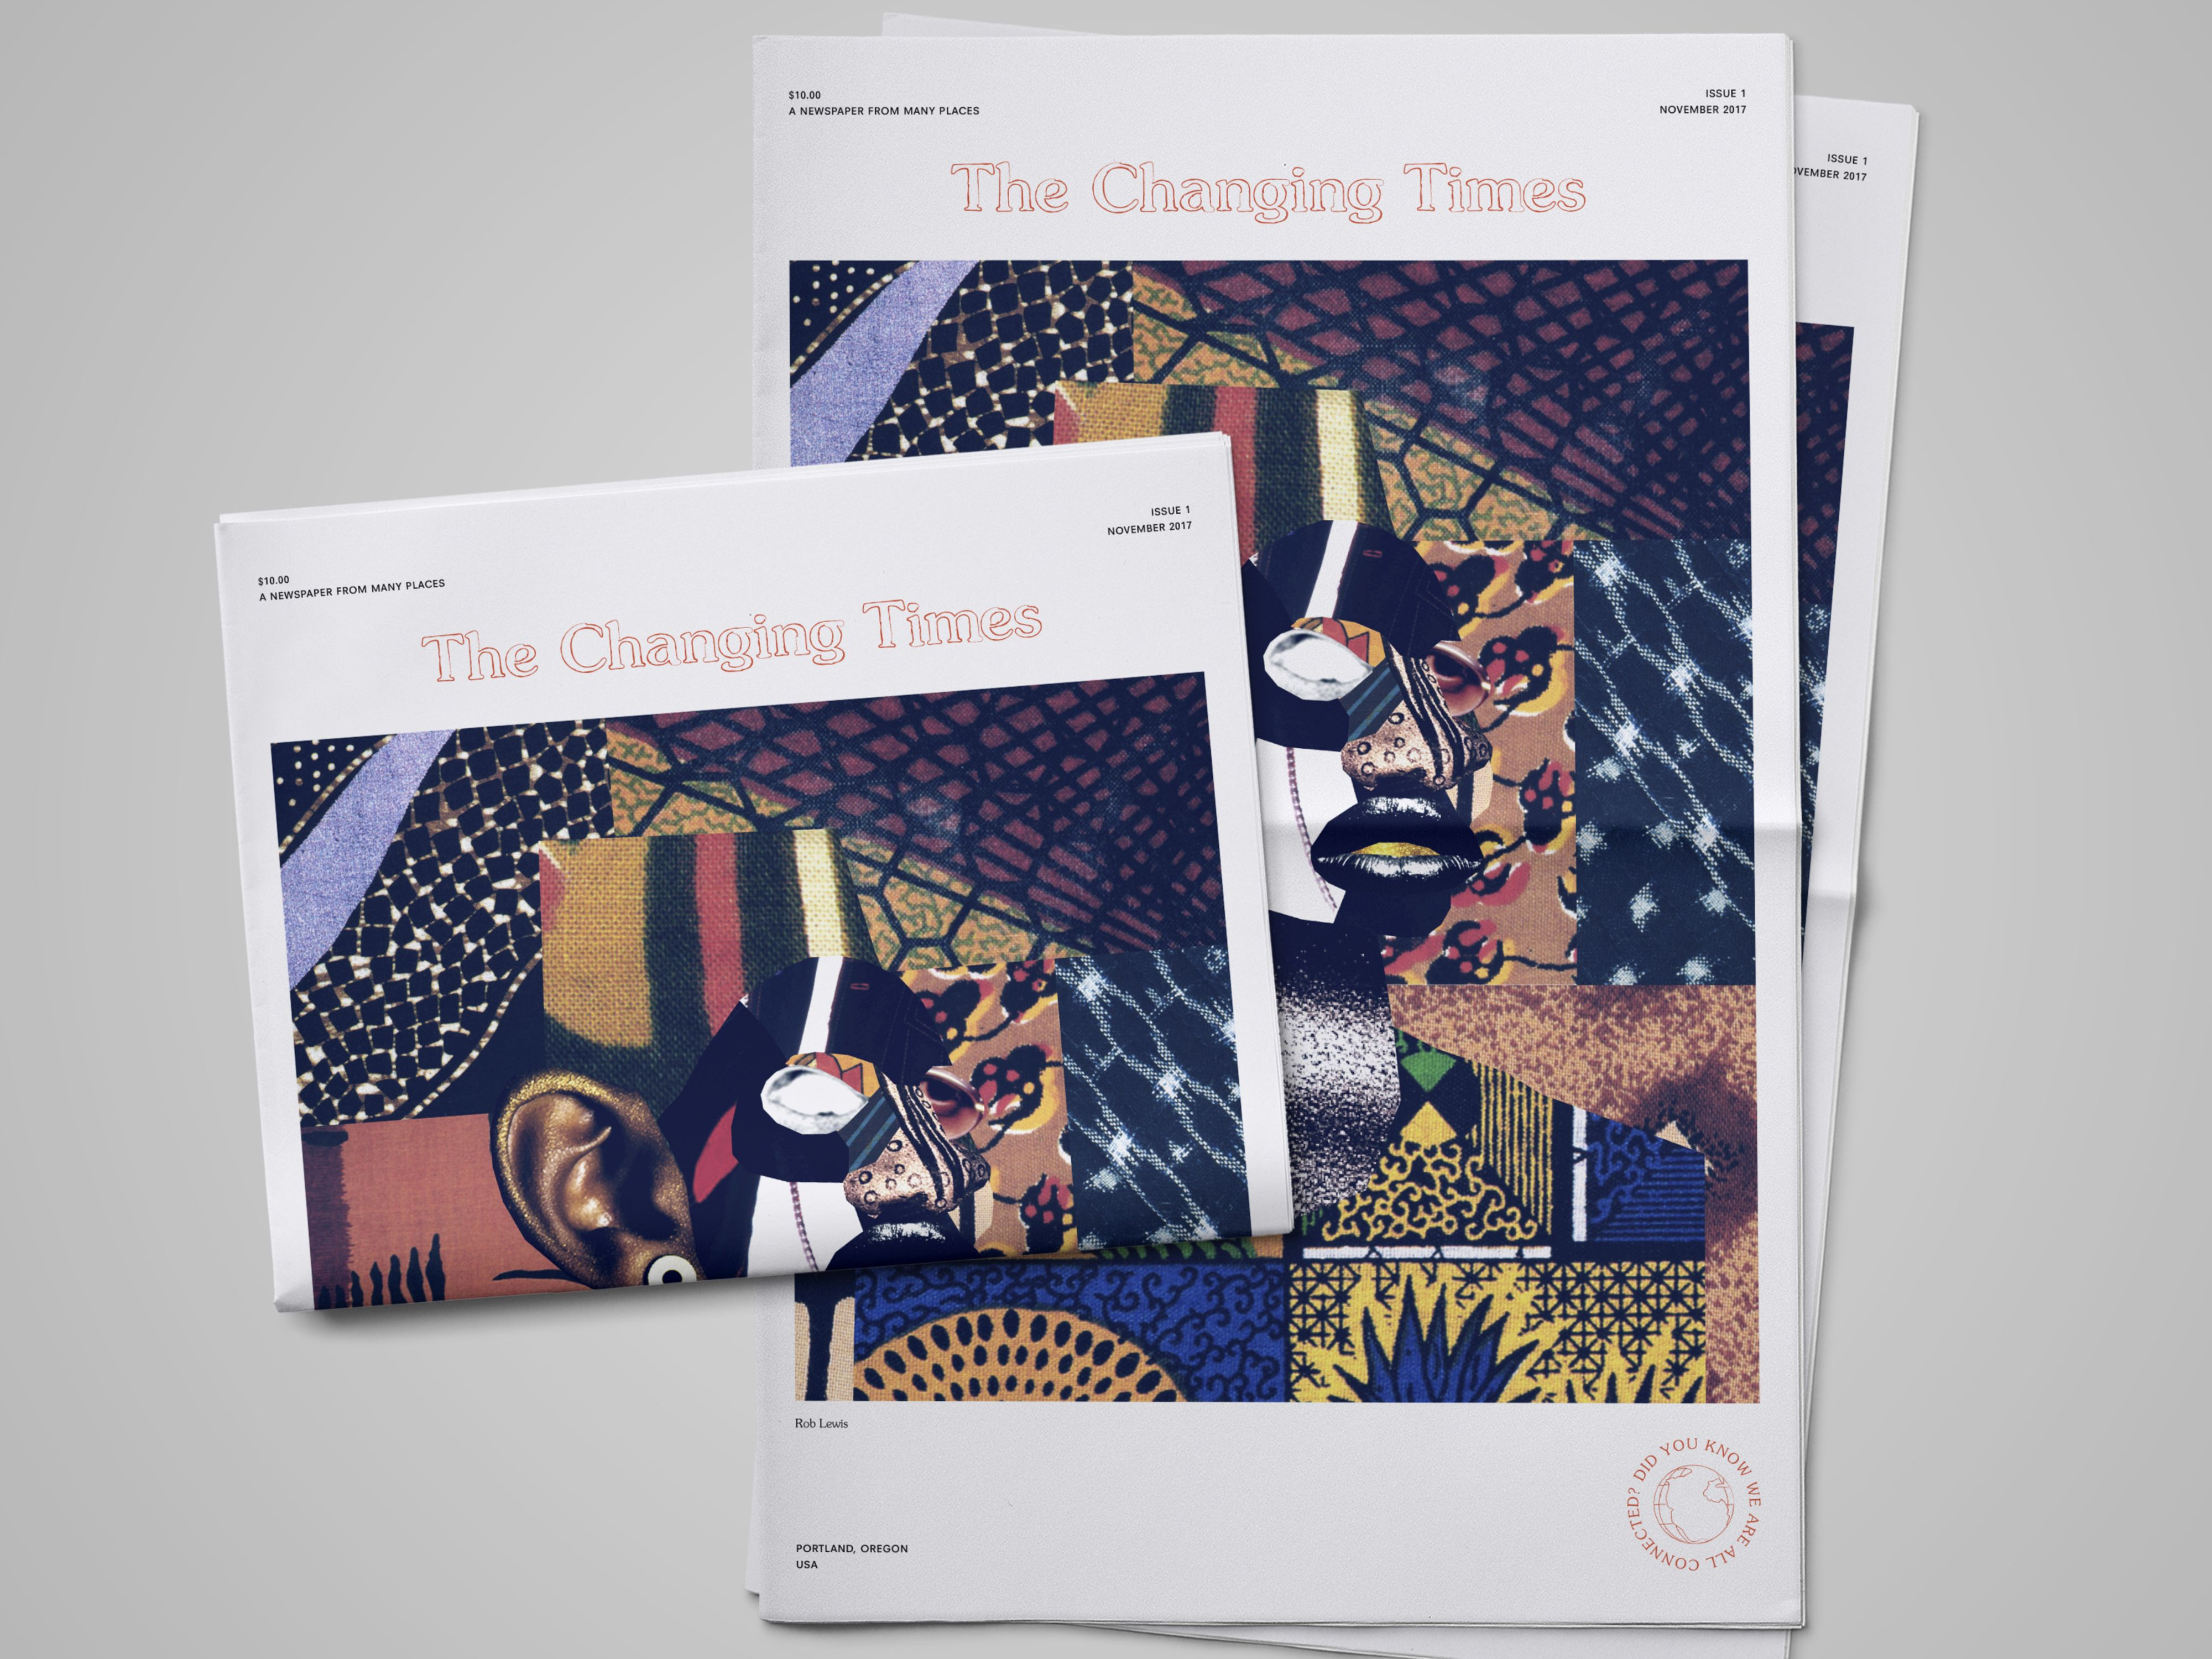 Thechangingtimes issue1 fqrnoo